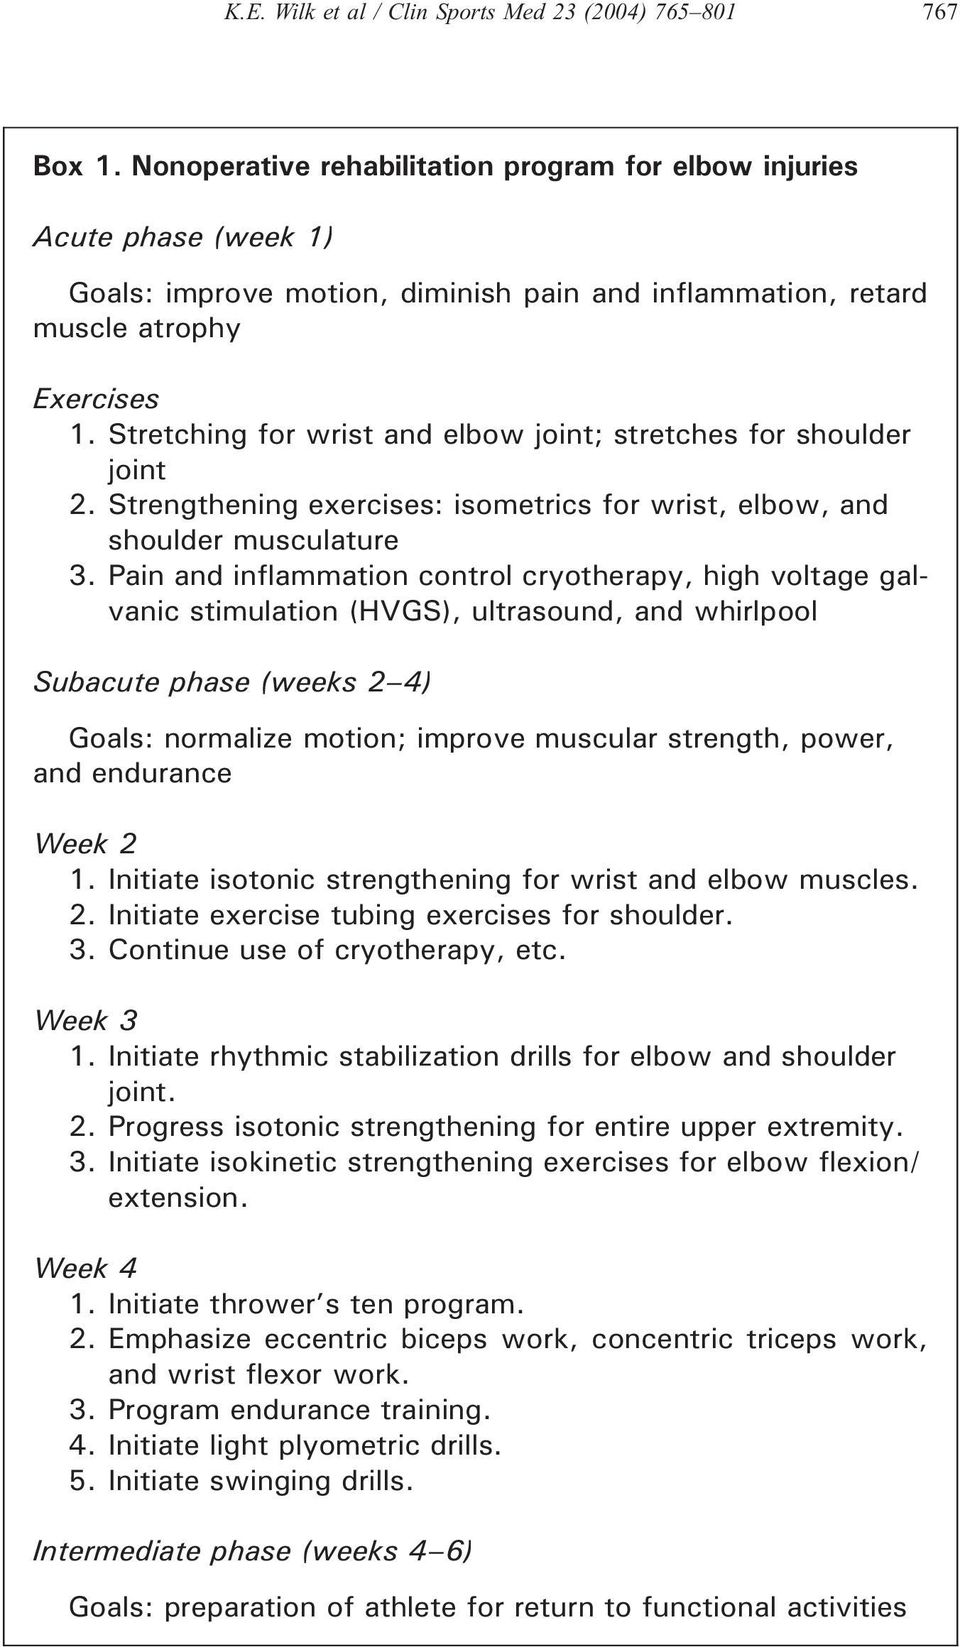 Stretching for wrist and elbow joint; stretches for shoulder joint 2. Strengthening exercises: isometrics for wrist, elbow, and shoulder musculature 3.